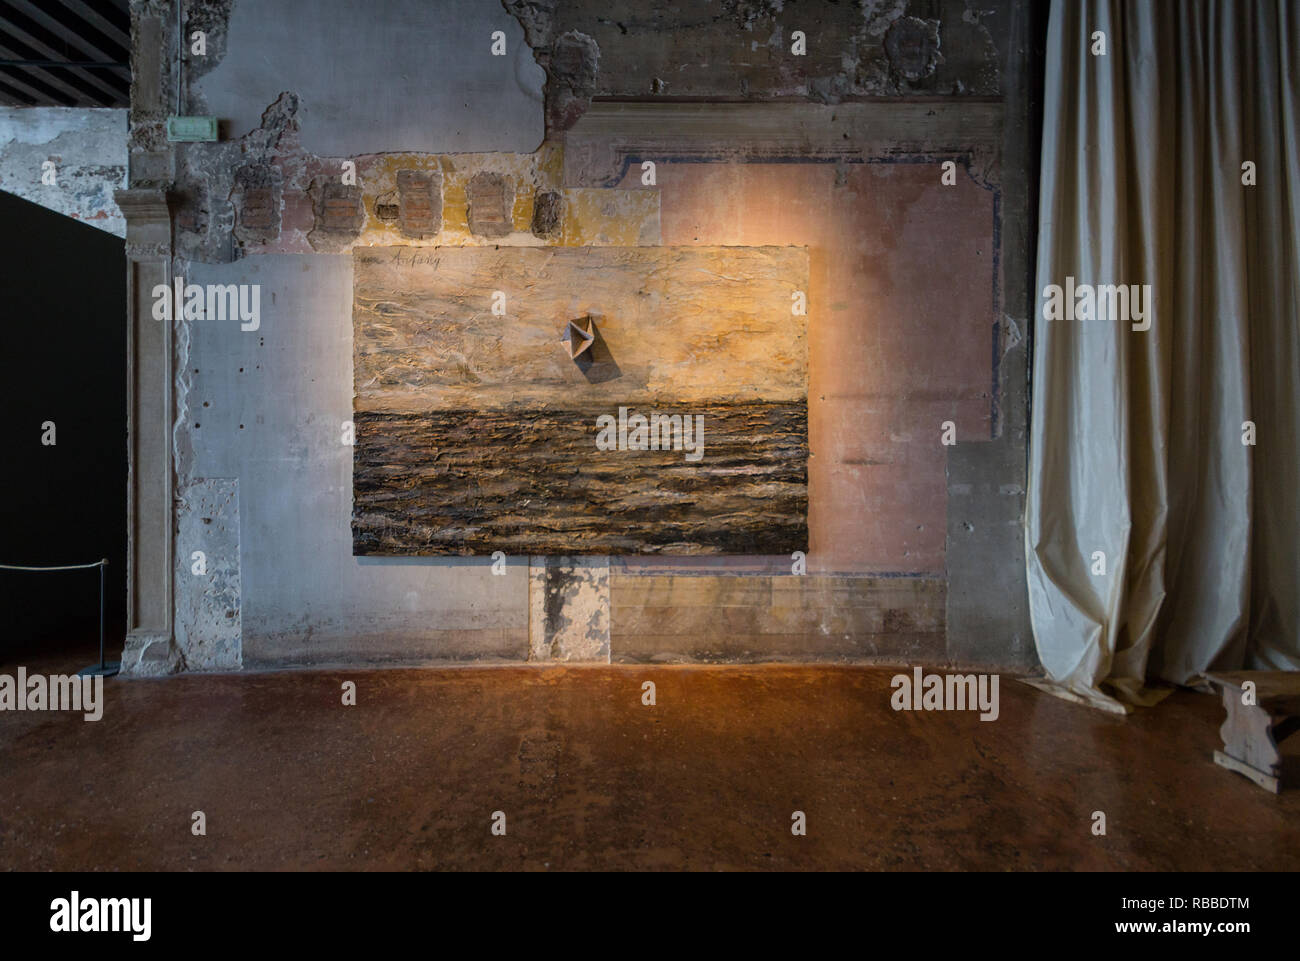 Anselm Kiefer, Am Anfang (In The Beginning), painting, 2003 - Palazzo Fortuny museum, Venice, Futuruins exhibition, 2019 - Stock Image